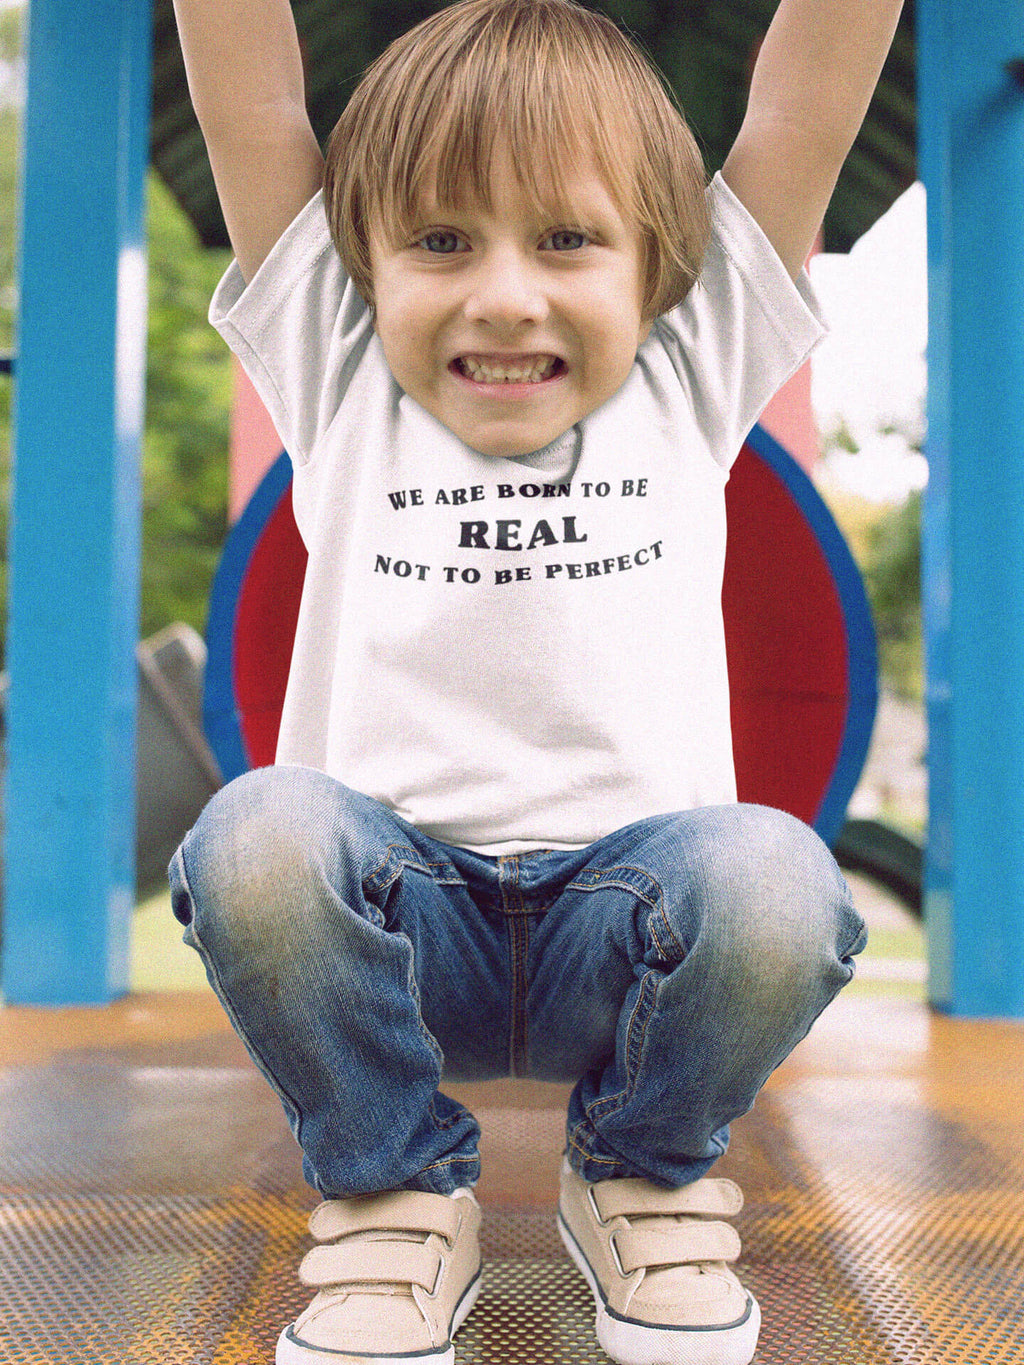 boy wearing born to be real t-shirt on playground